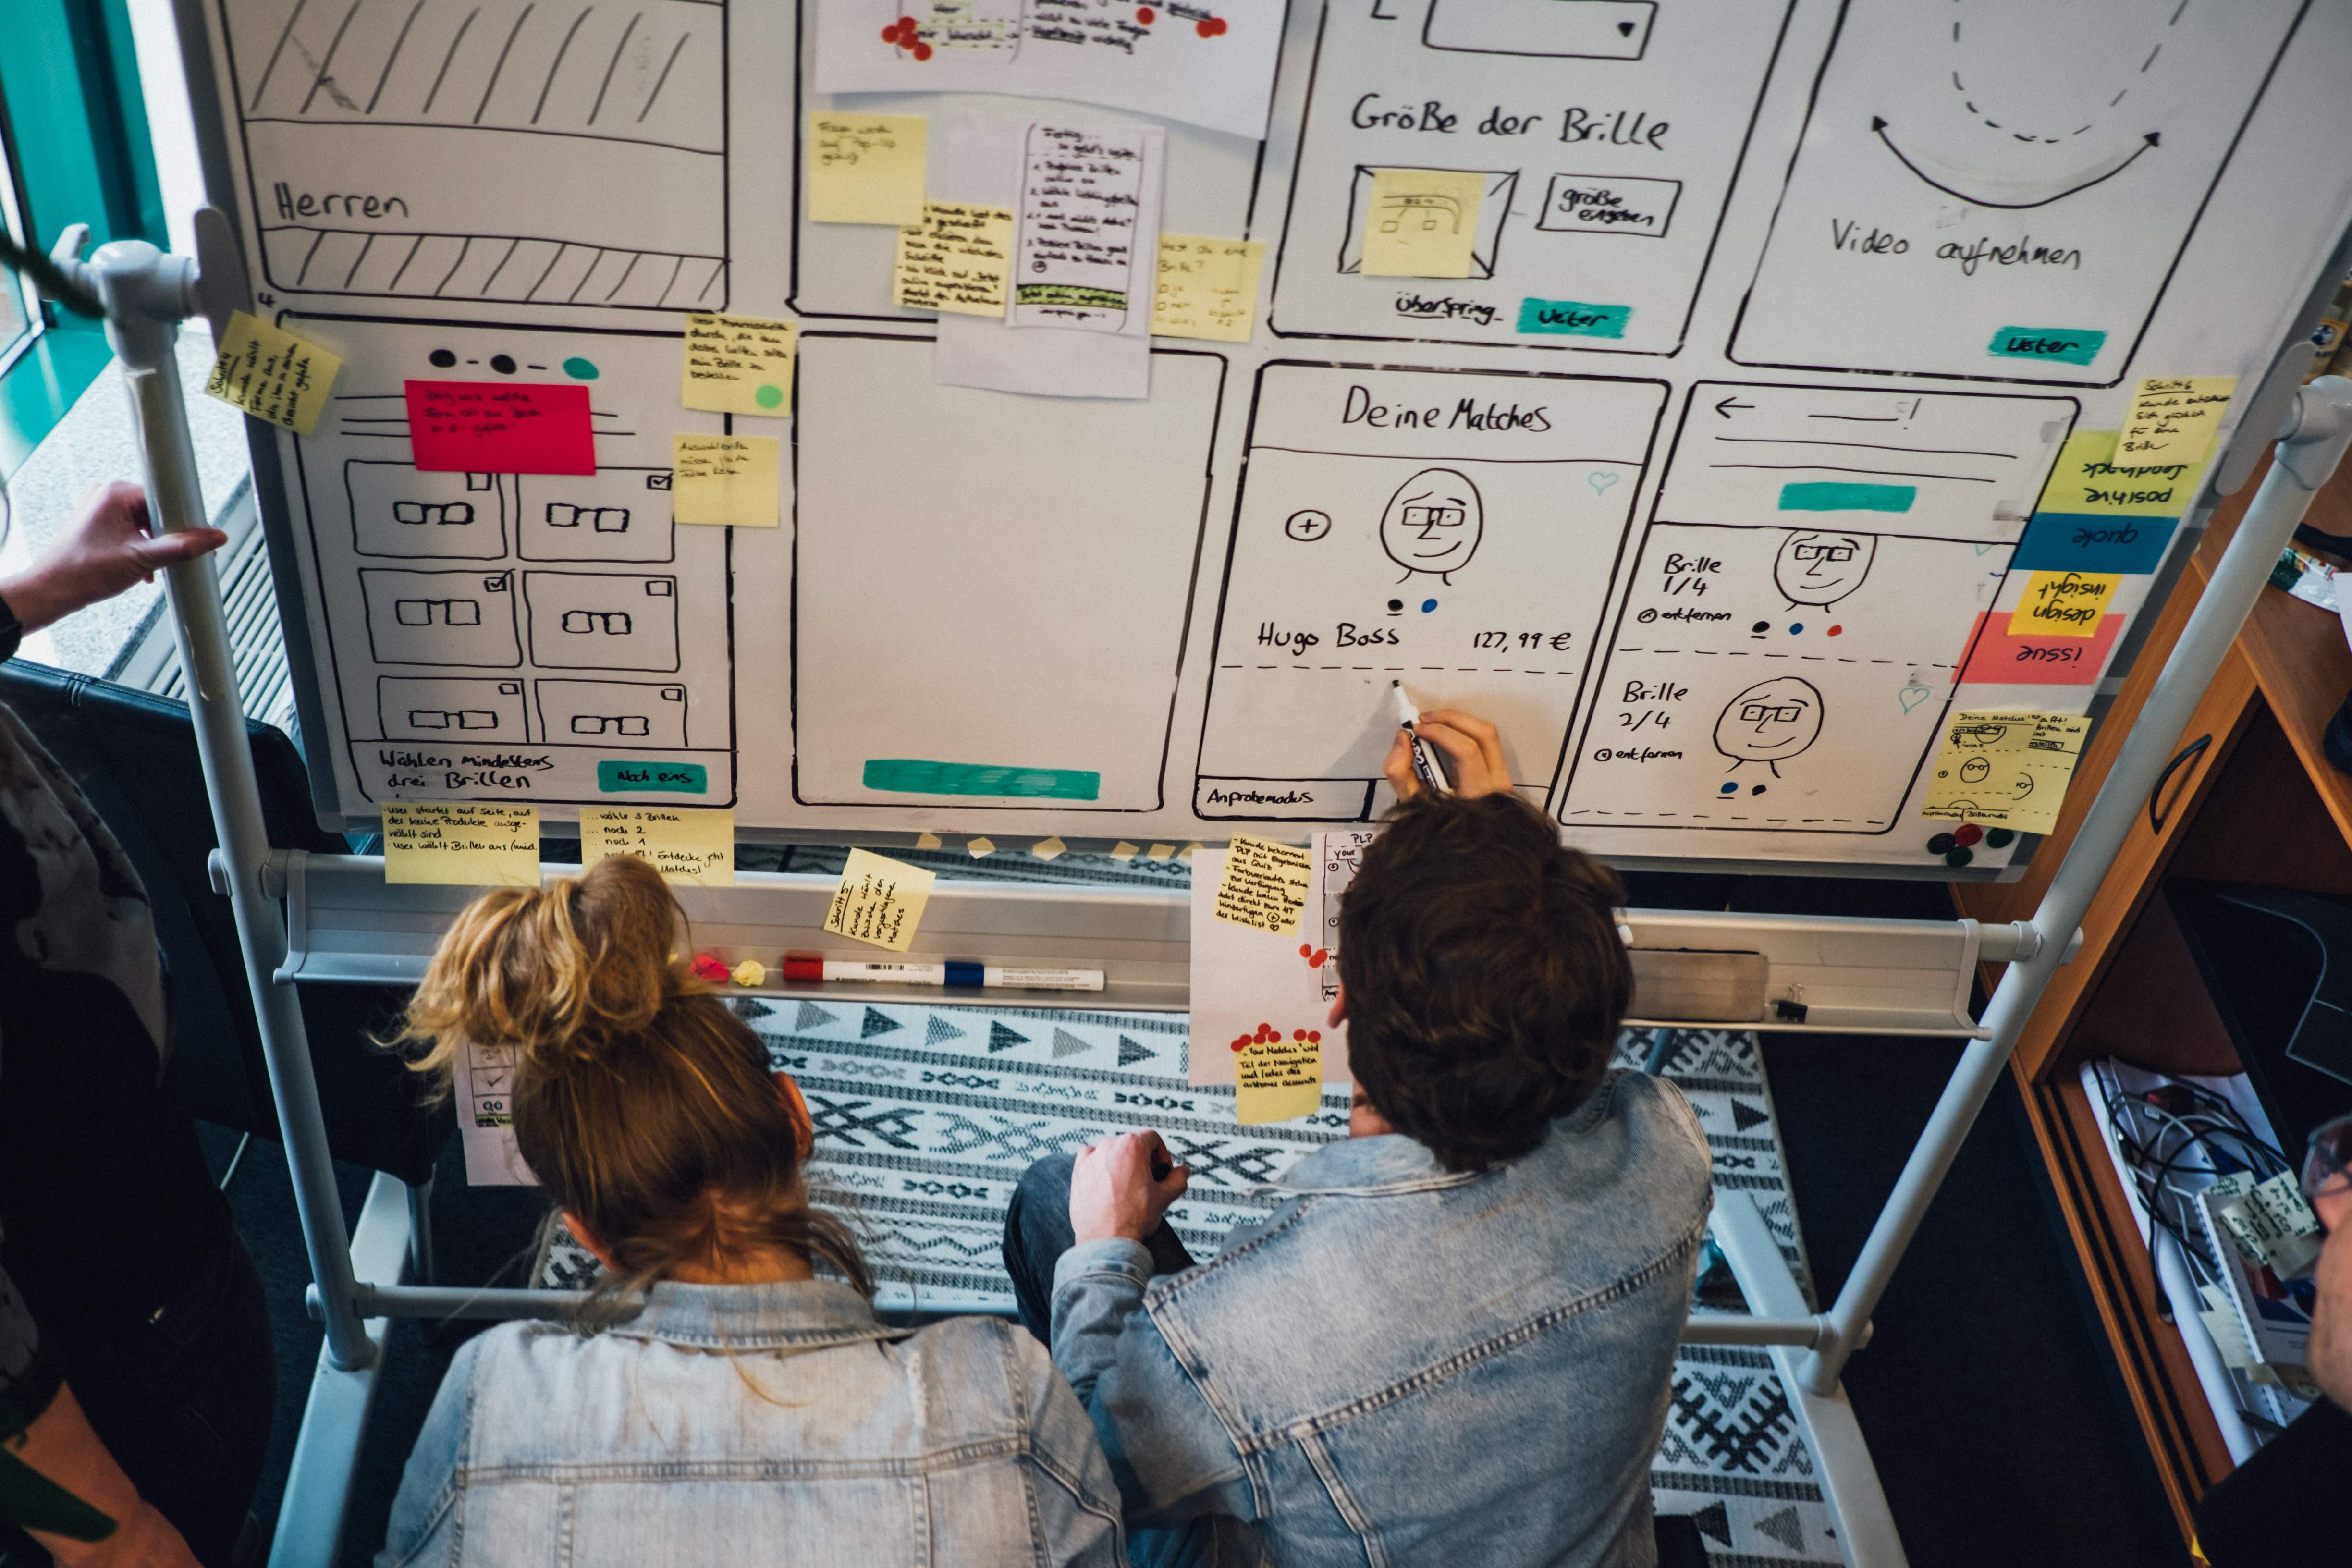 The lean startup cycle with idea, build, launch and insights